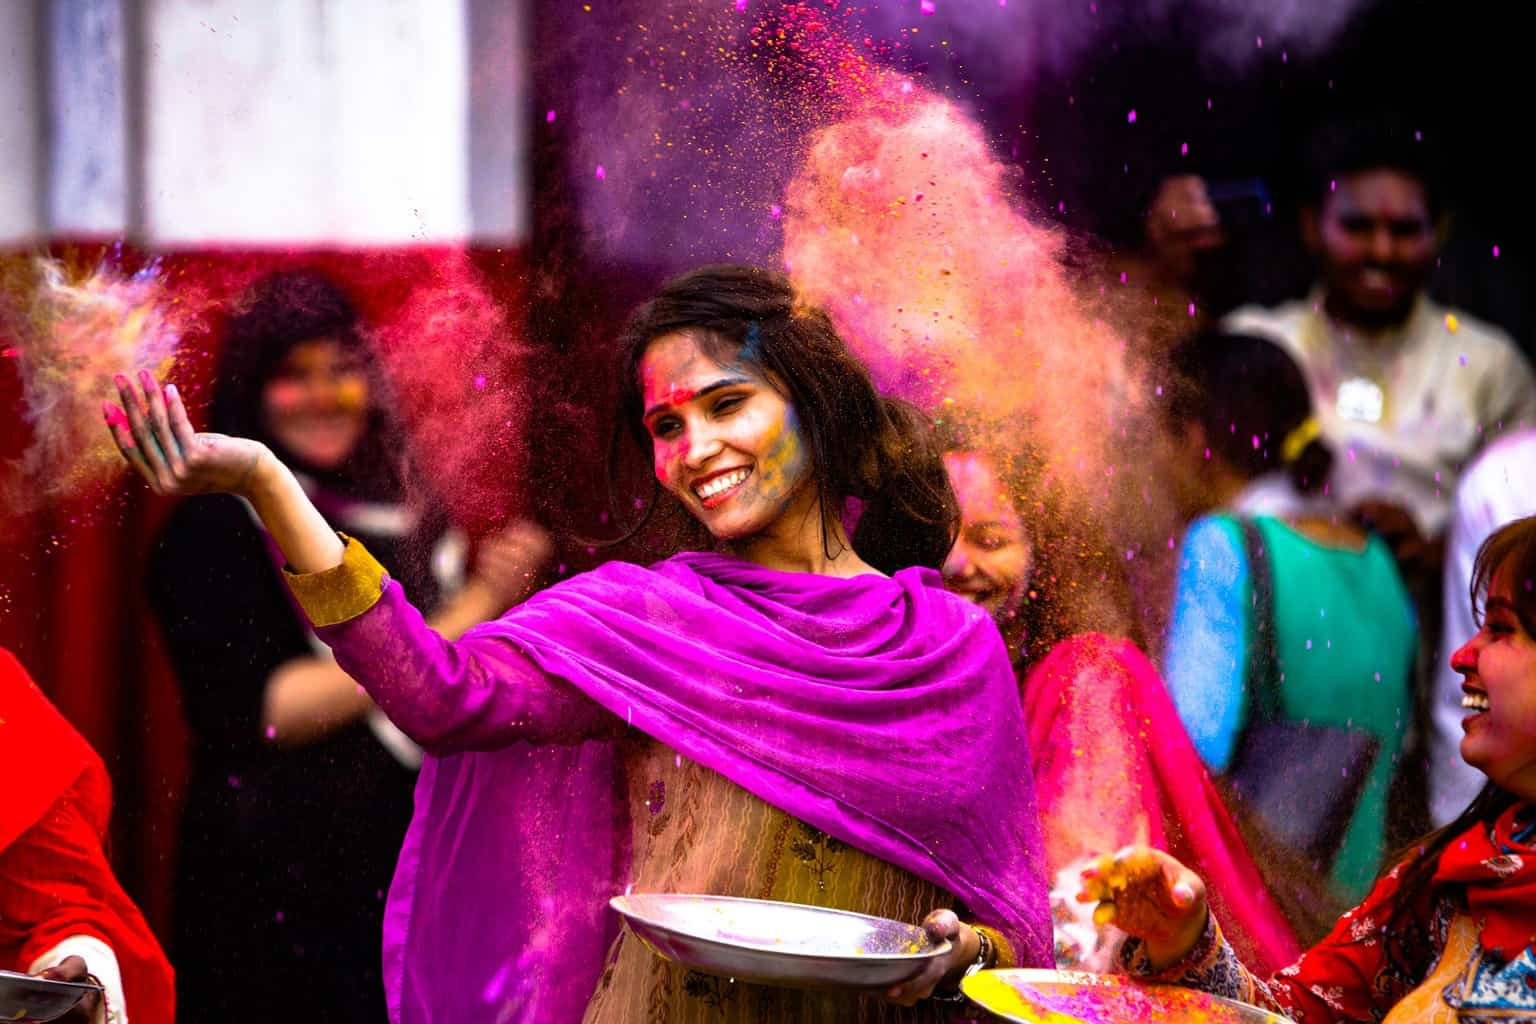 Lady in colorful clothes with spices in the air